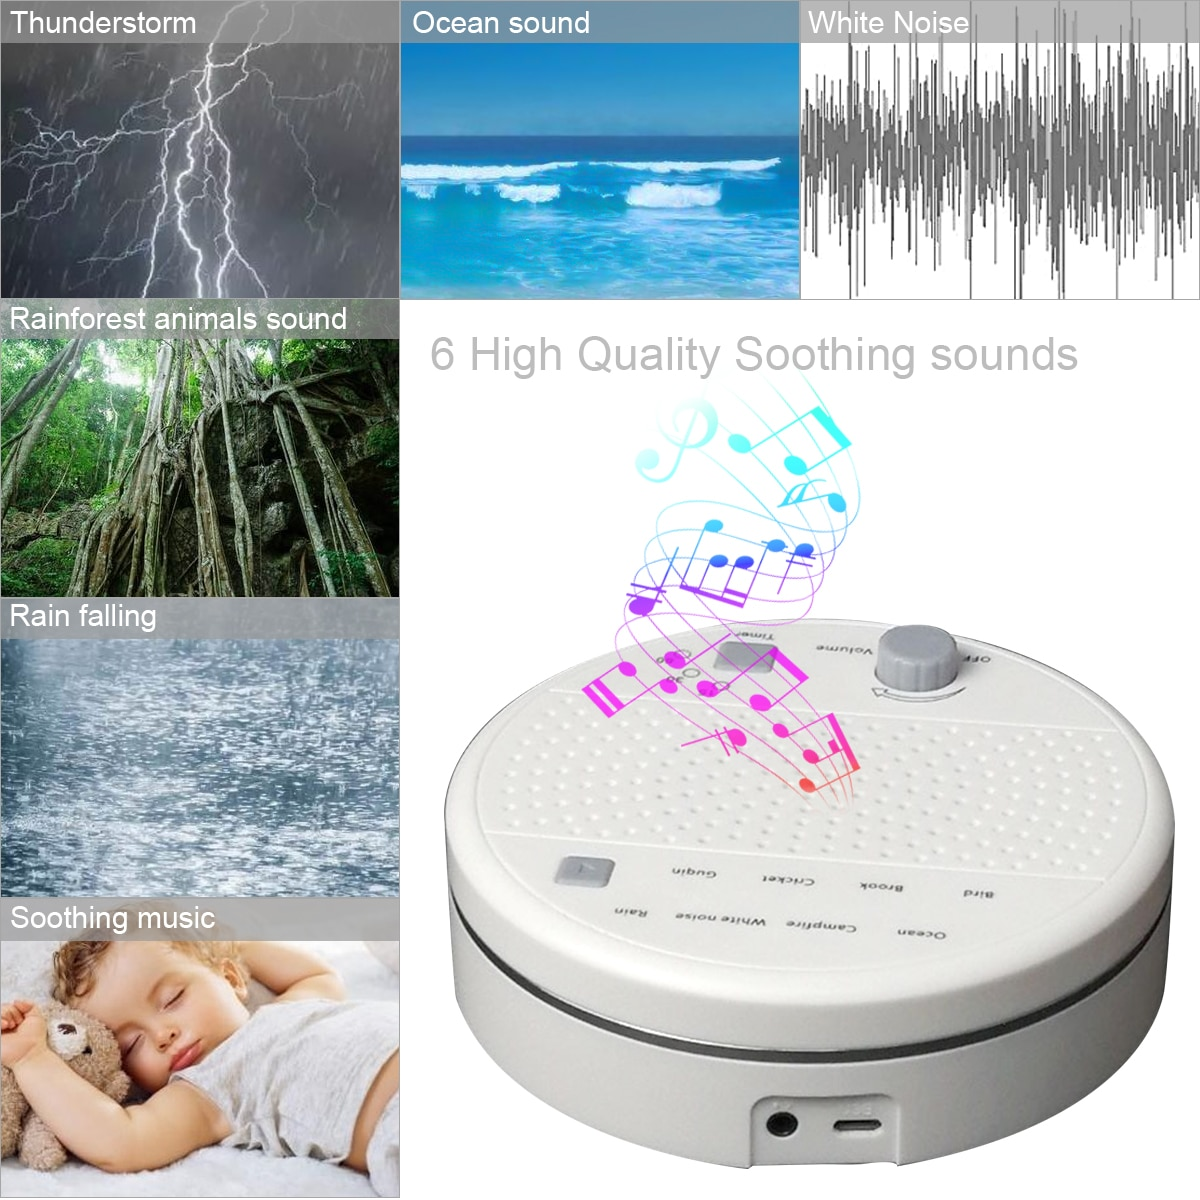 White Noise Machine Sleep Sound Machine For Sleeping Relaxation For for Light Sleeper Insomnia Anxiety Depression Stress Relief